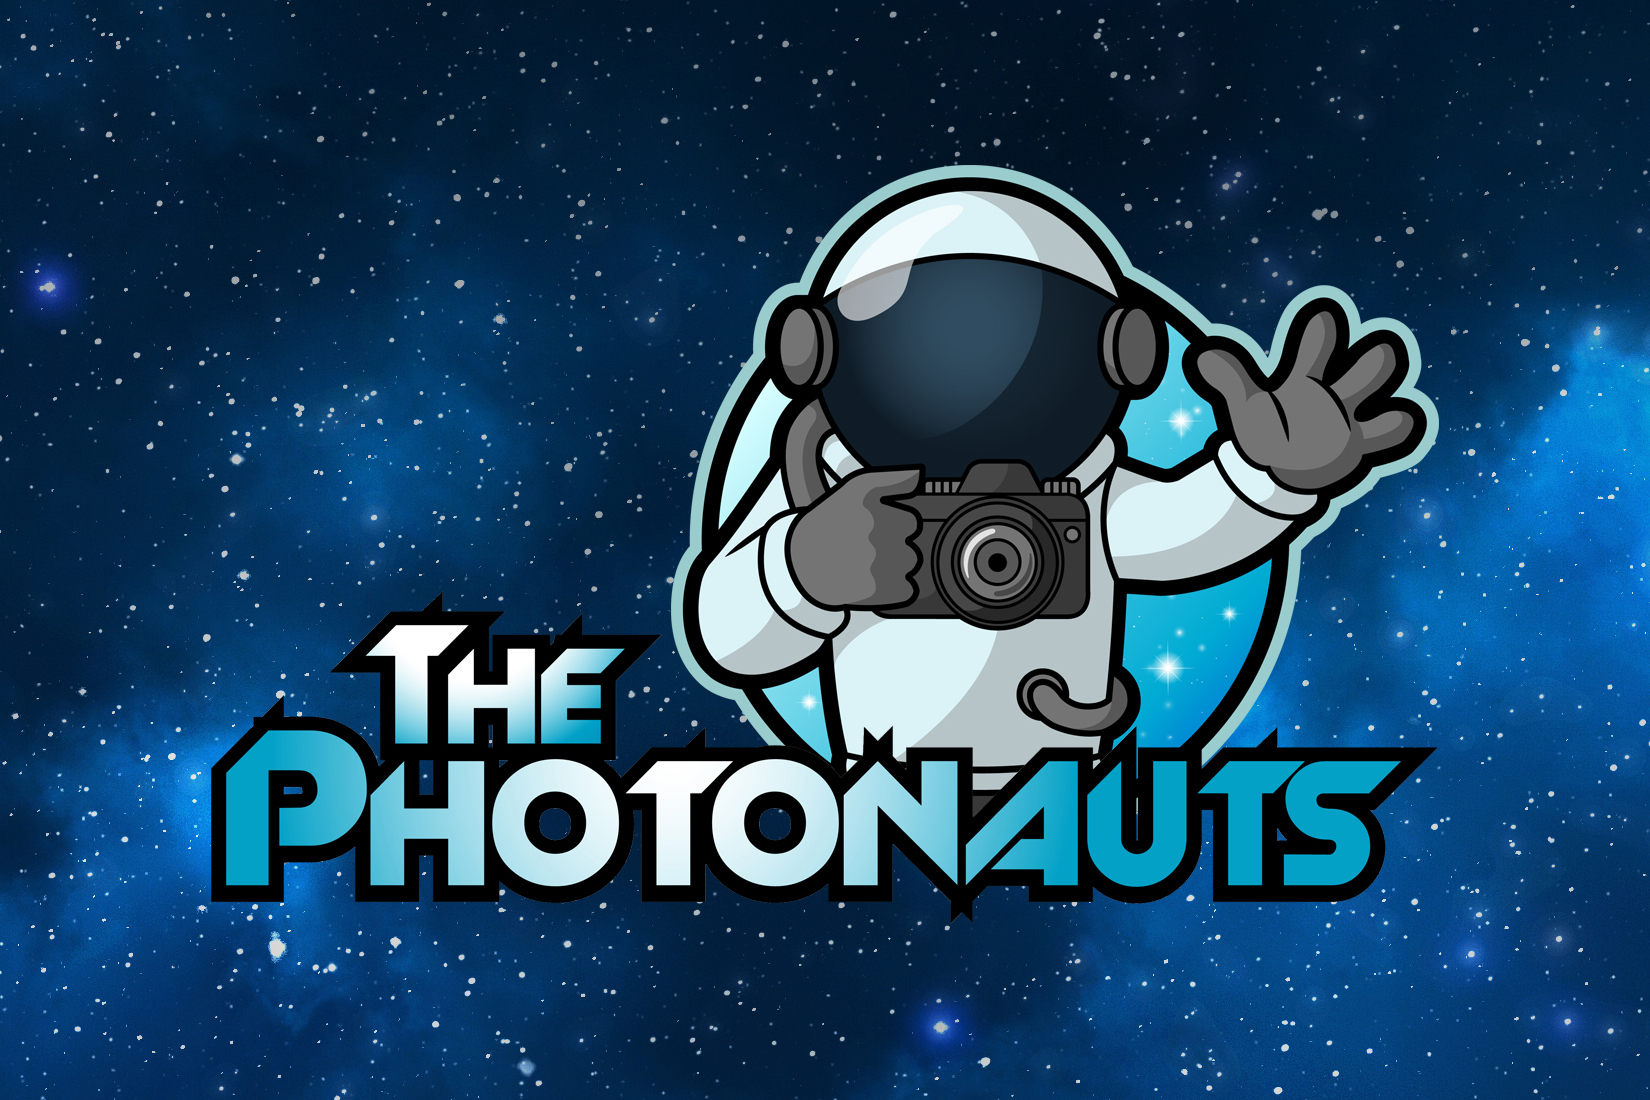 ThePhotonauts are real! And they're on their way to you :)